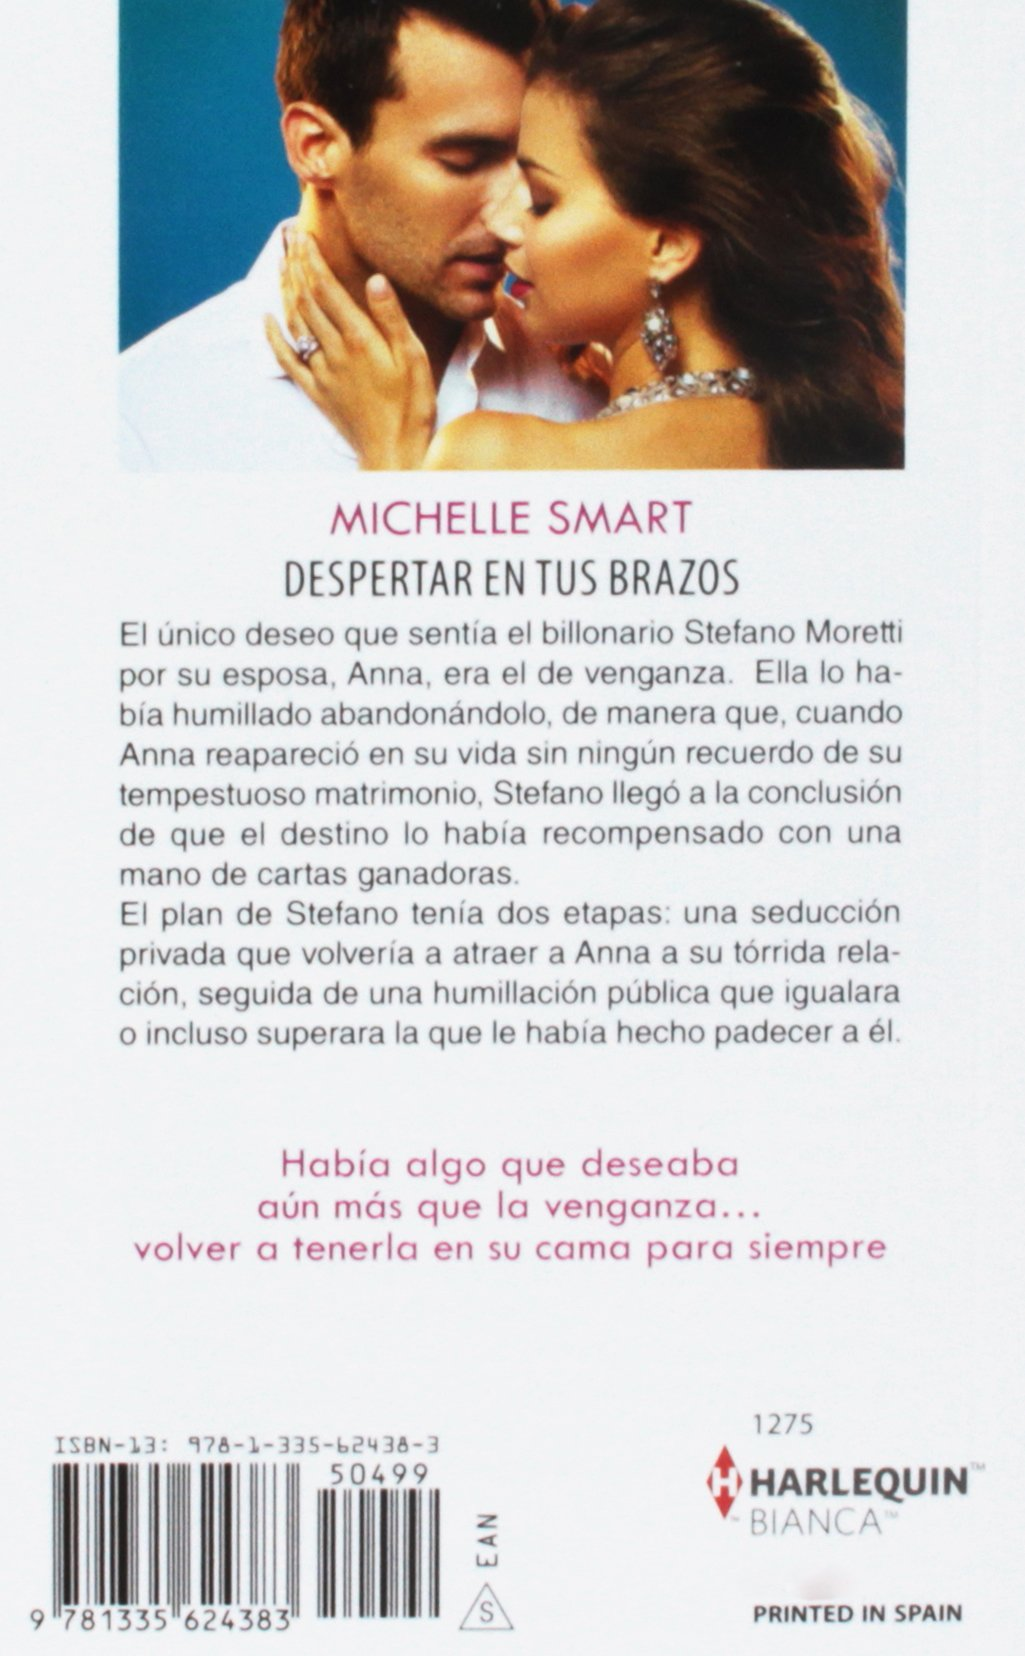 Despertar en tus brazos: (Waking Up in Your Arms) (Harlequin Bianca) (Spanish Edition): Michelle Smart: 9781335624383: Amazon.com: Books